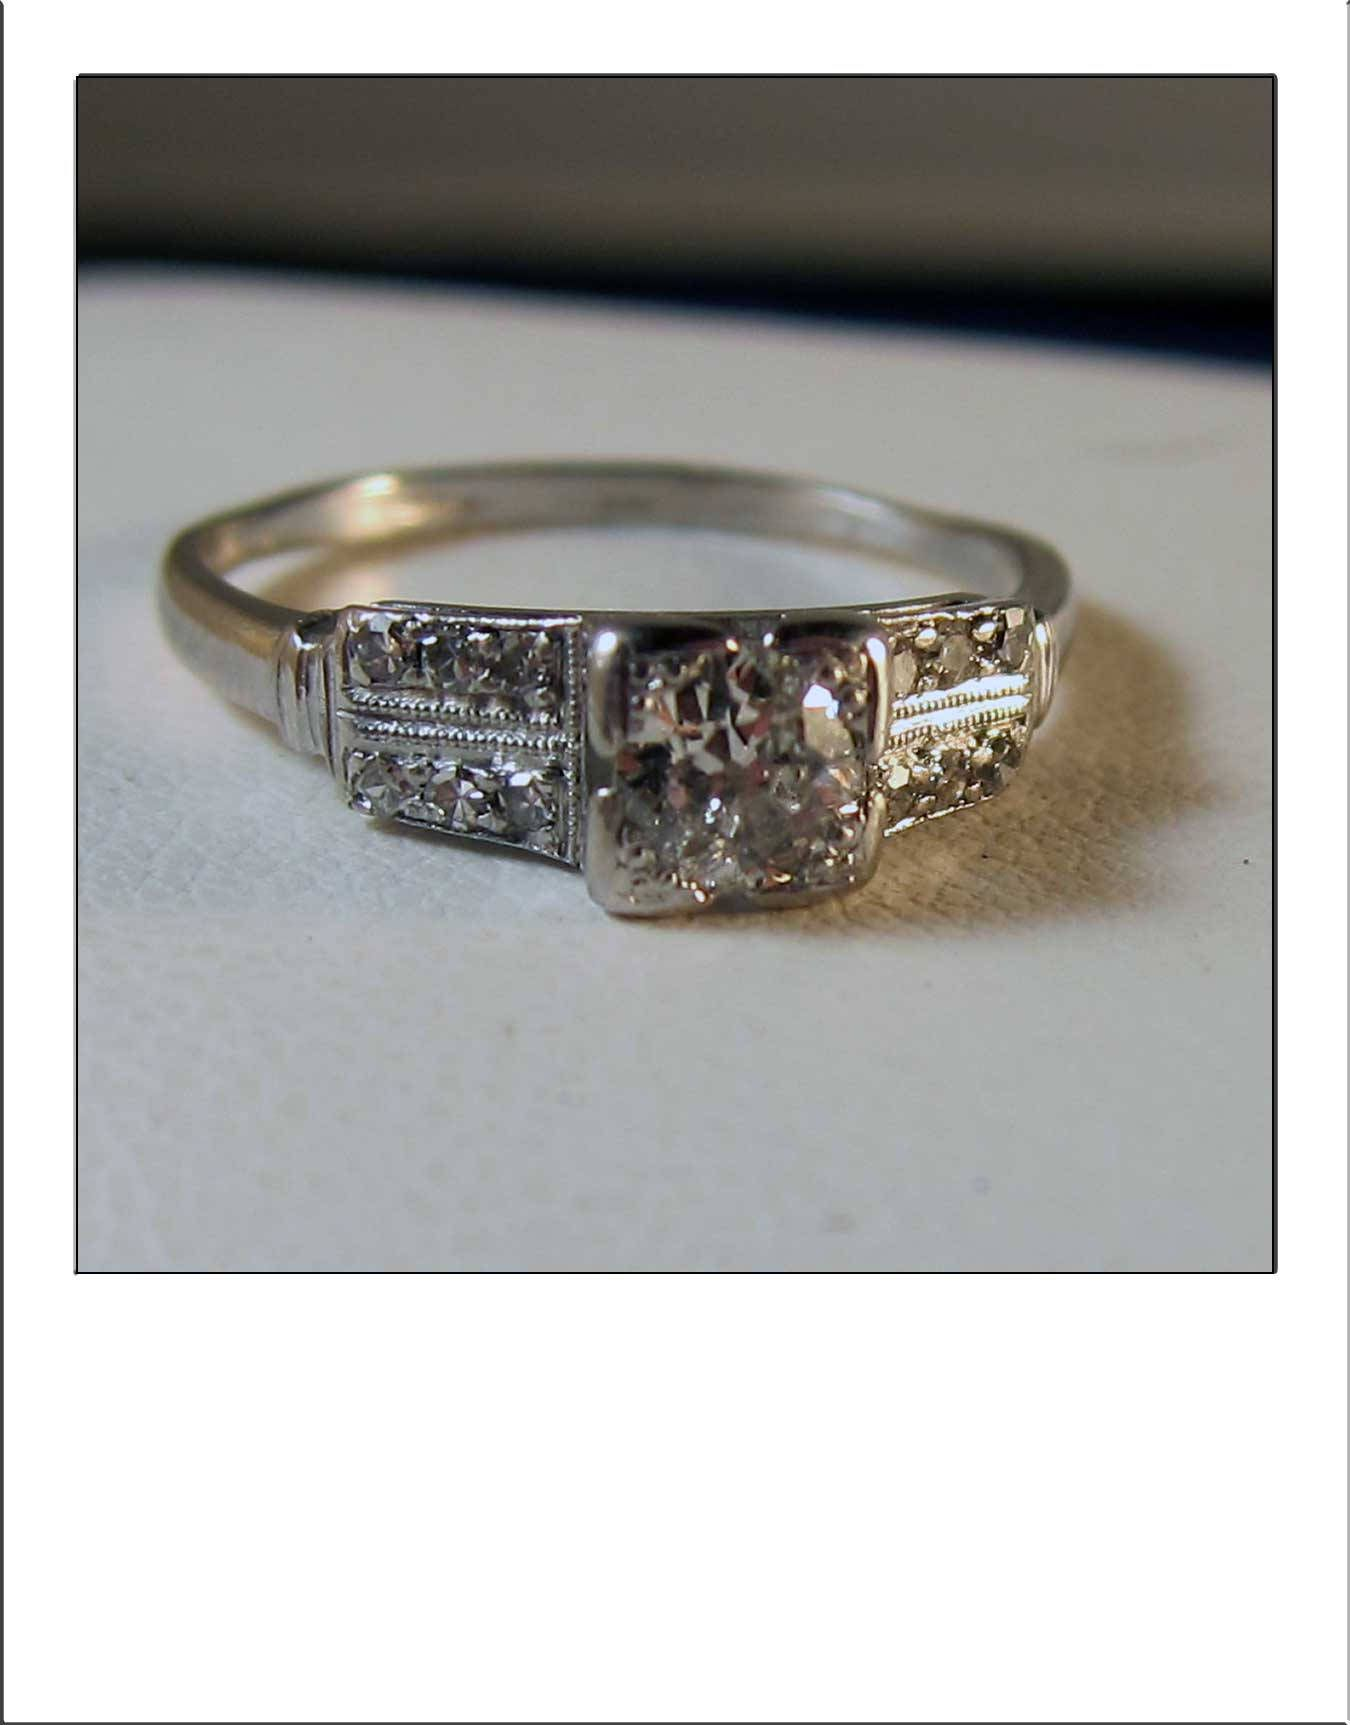 wedding ideas gallery ring an rings concierge old decor antique features diamond img this signature engagement mine cut